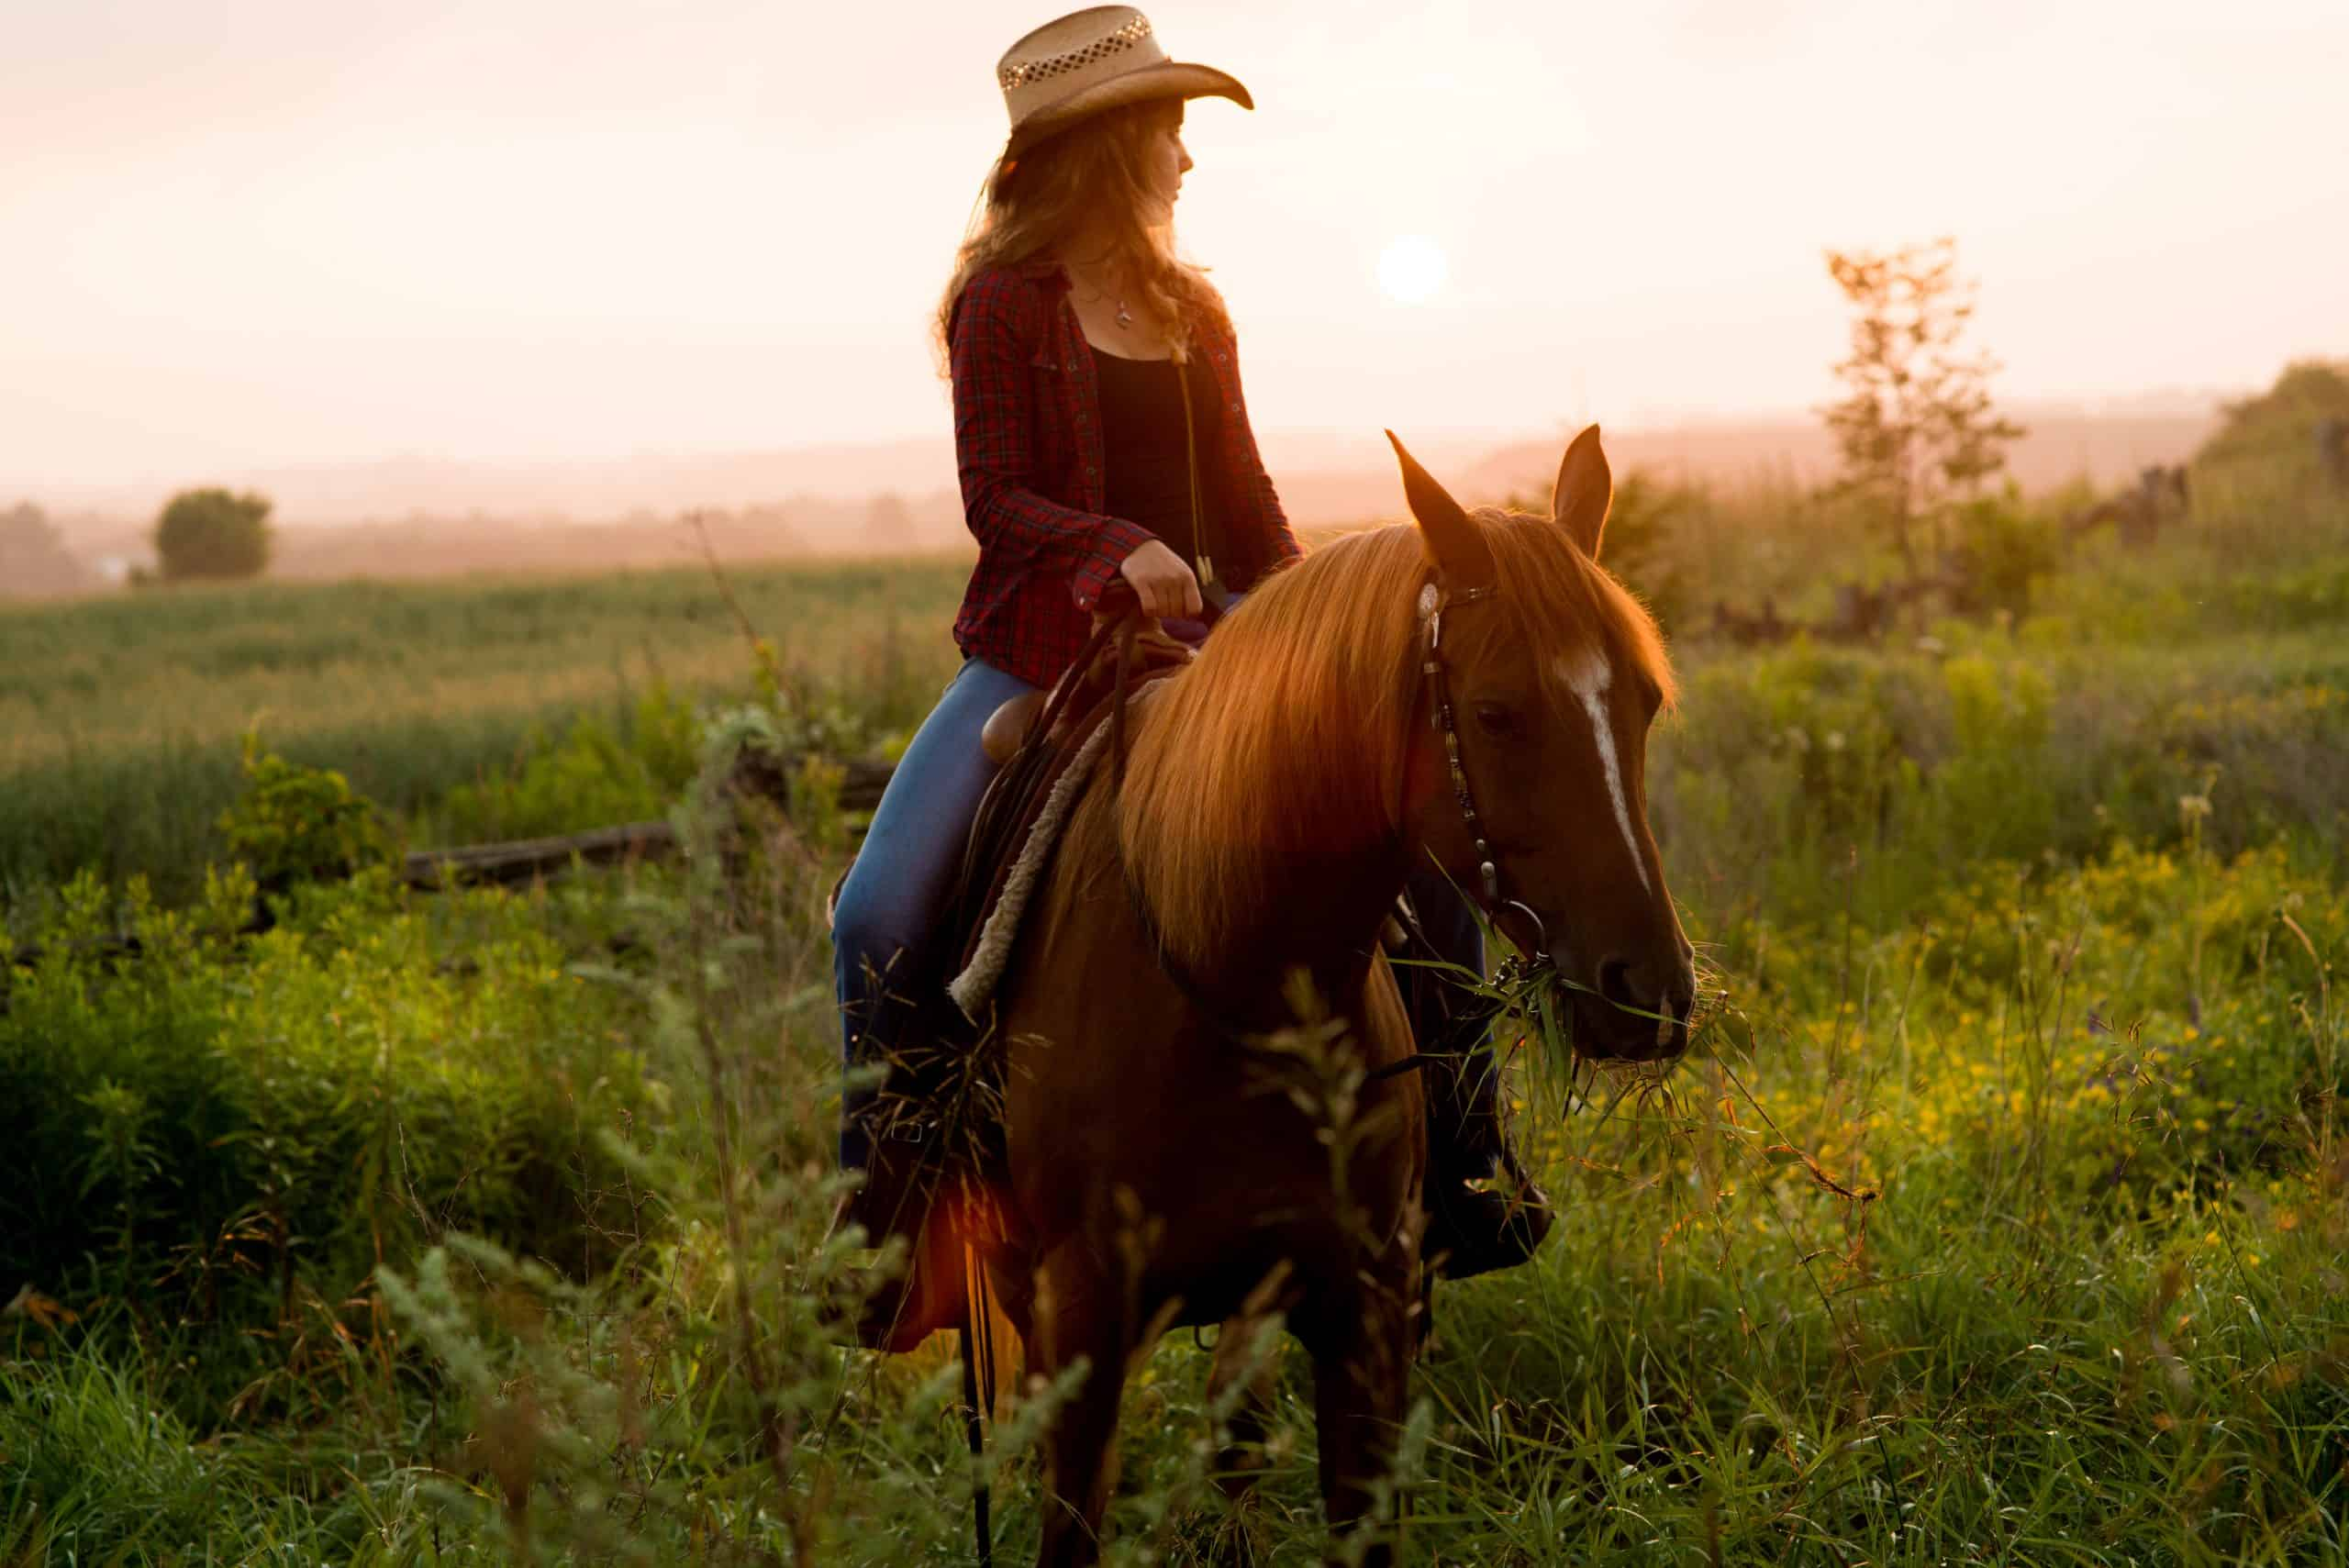 Country Girl taking an earl morning ride with Horse at Sunrise..  Backlit glow of Sun.